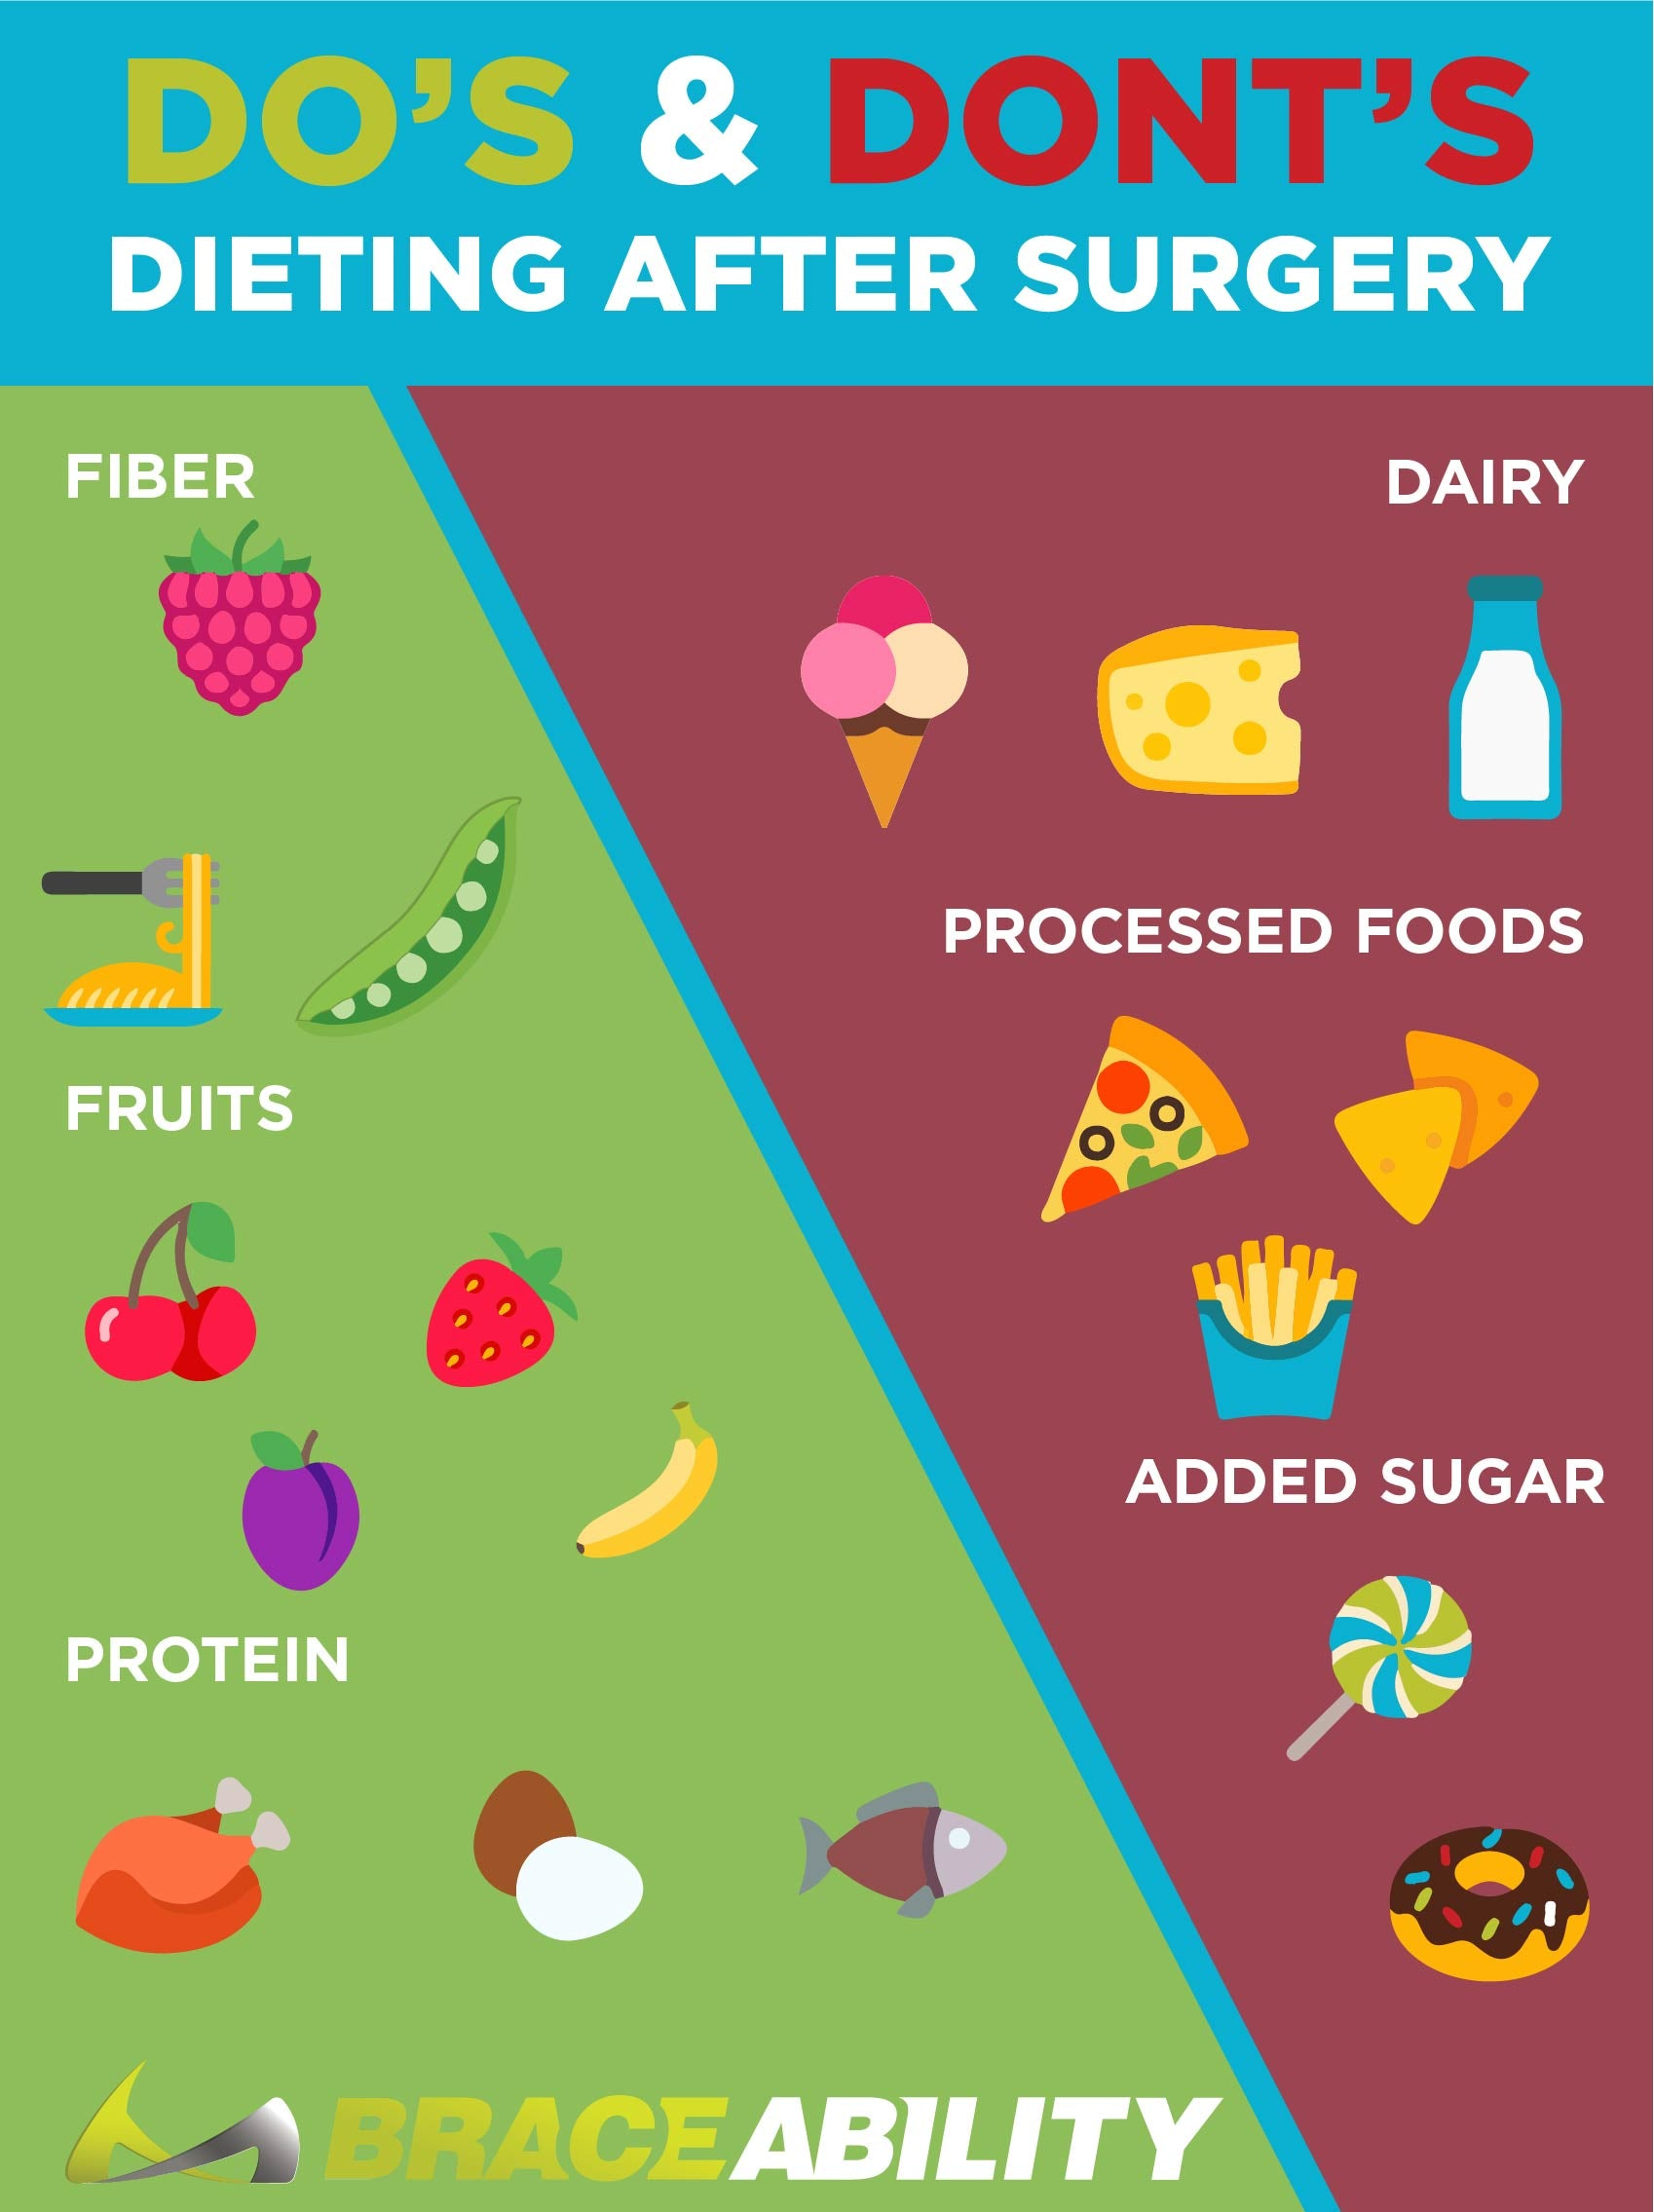 Infographic of they type of food you should eat after surgery and the kinds you should avoid